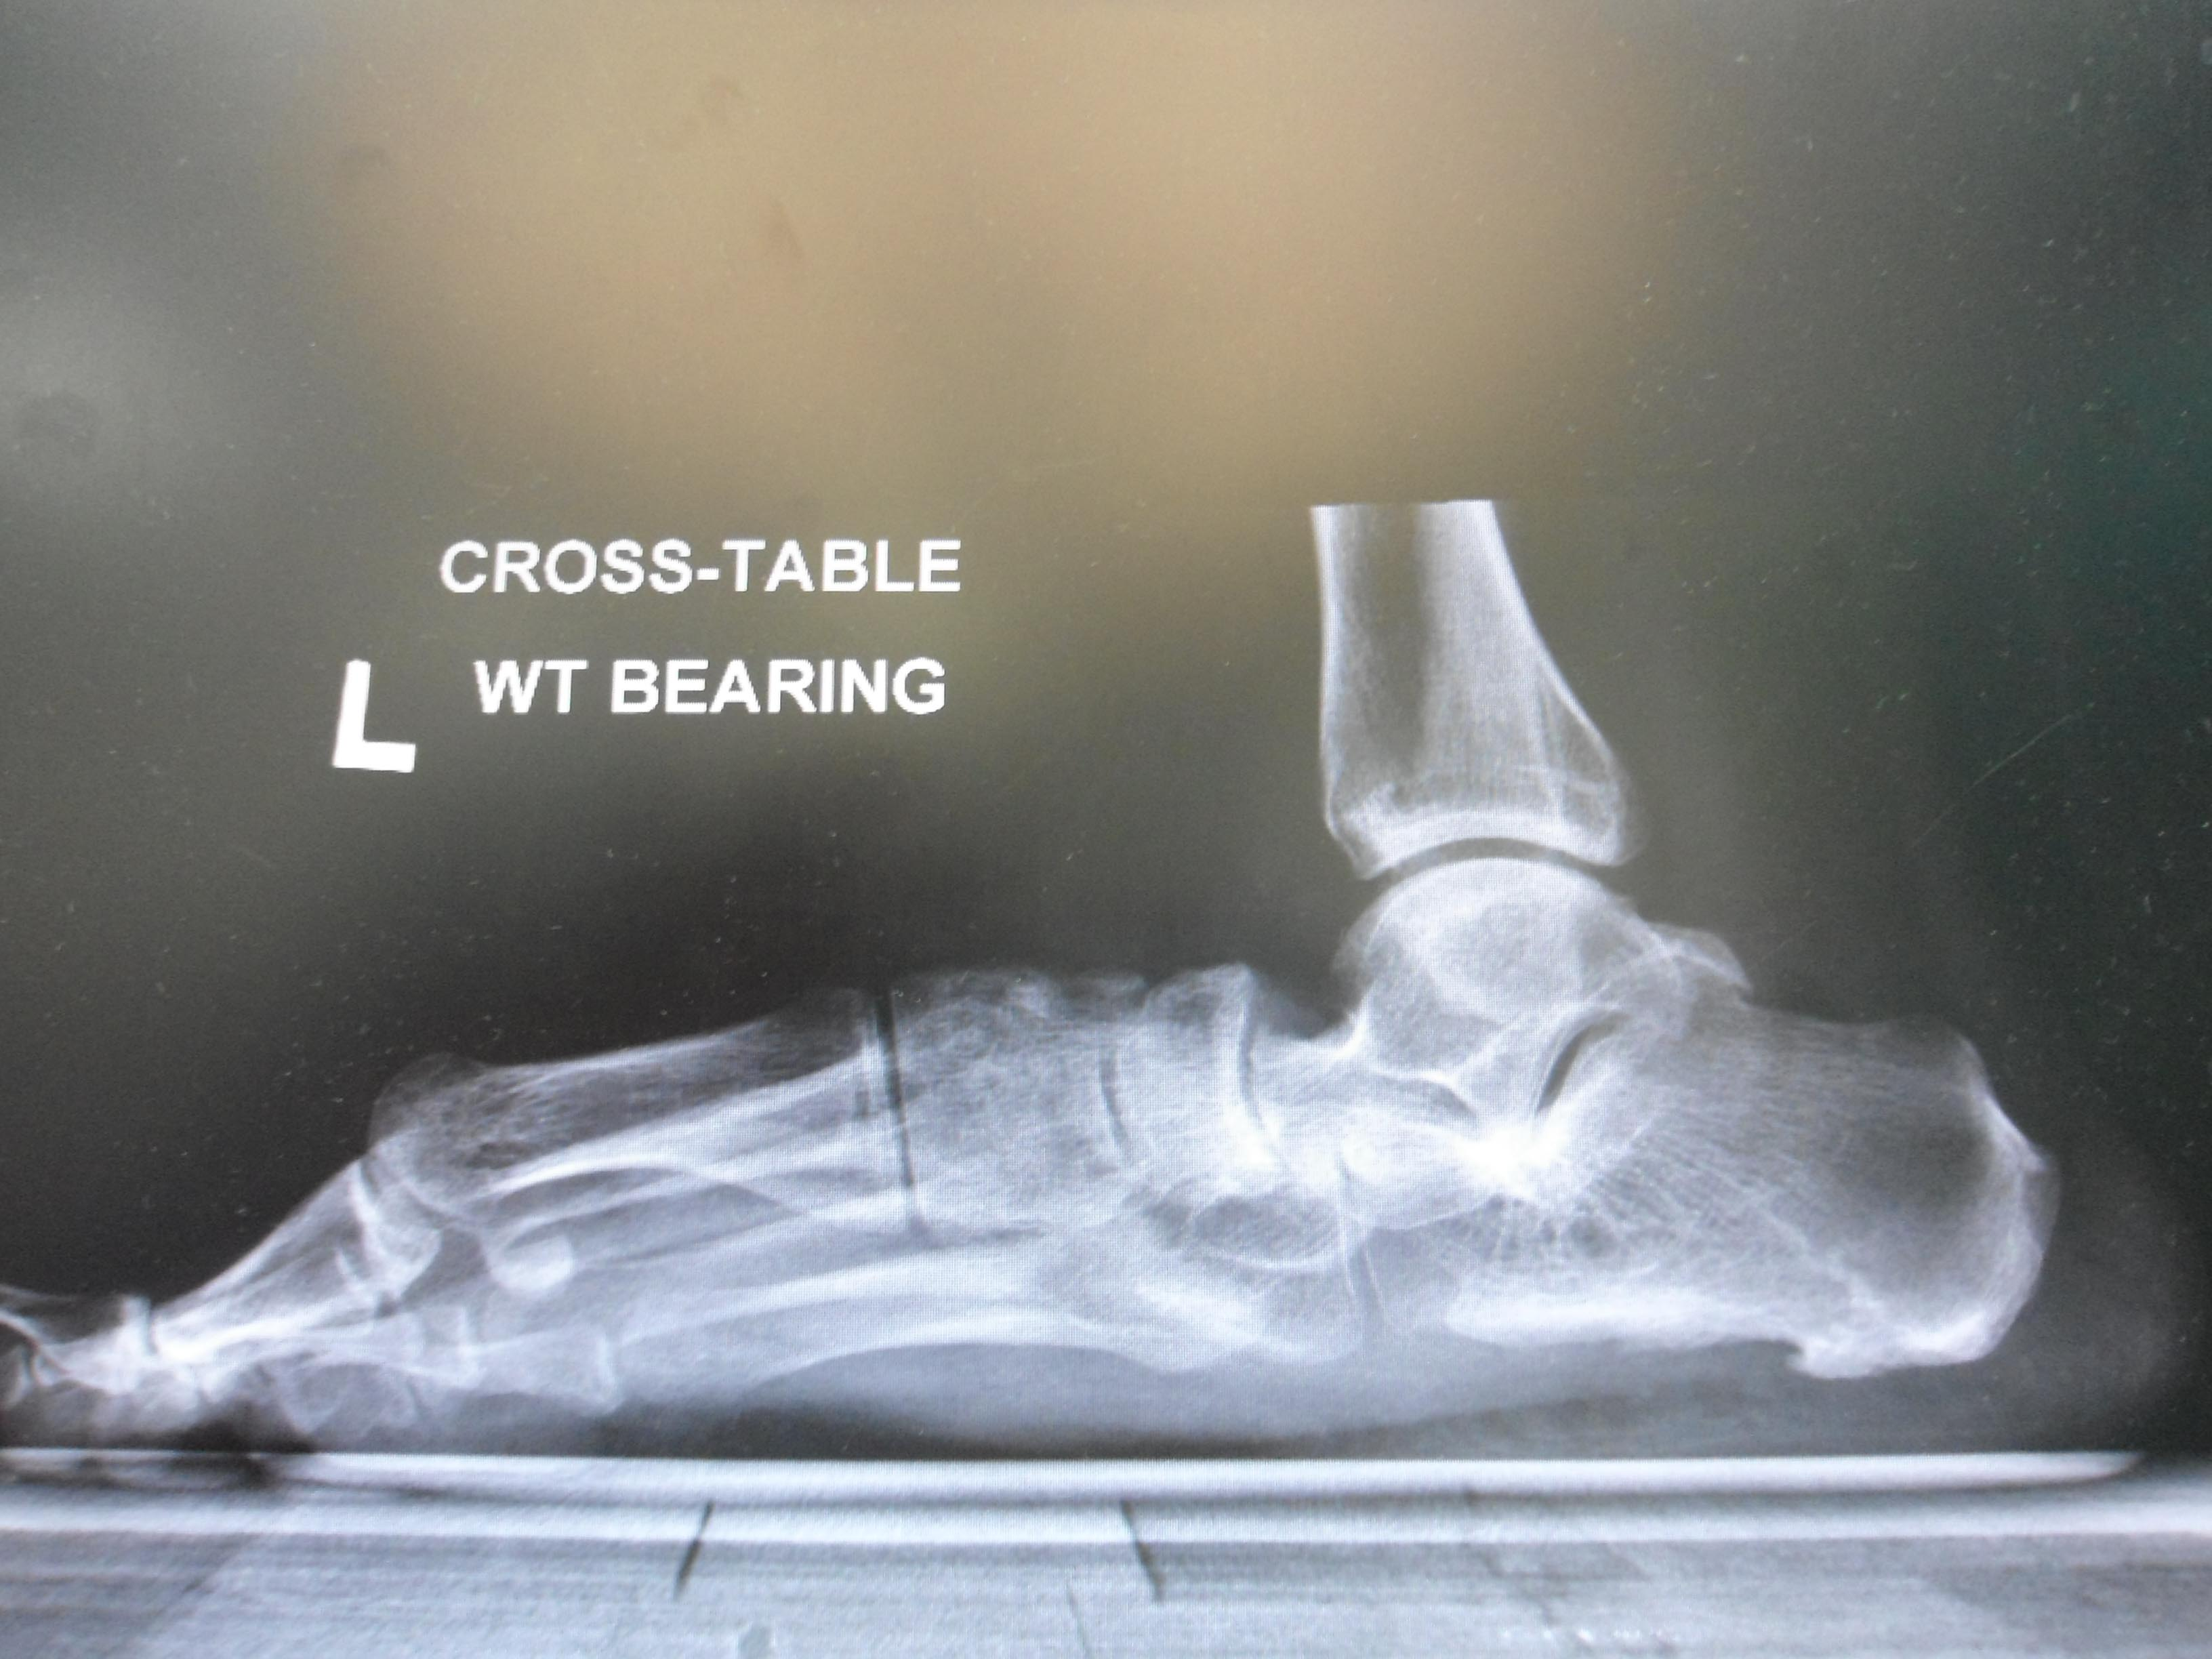 flatfoot deformity with forefoot supination